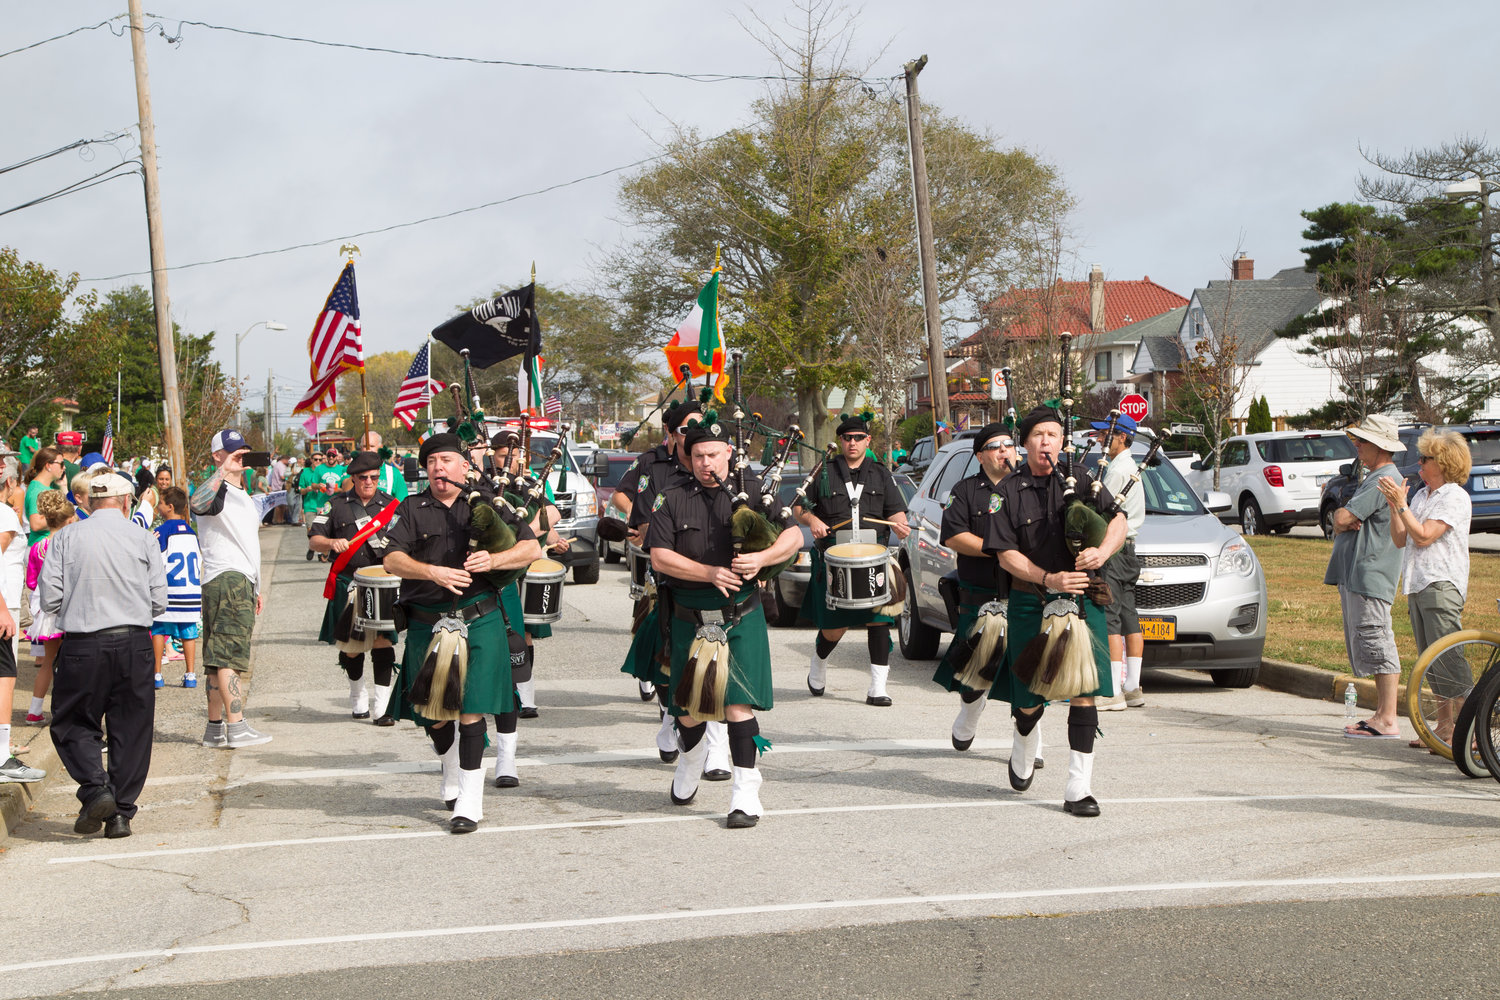 The annual Irish Day Parade has been canceled because of the coronavirus pandemic.